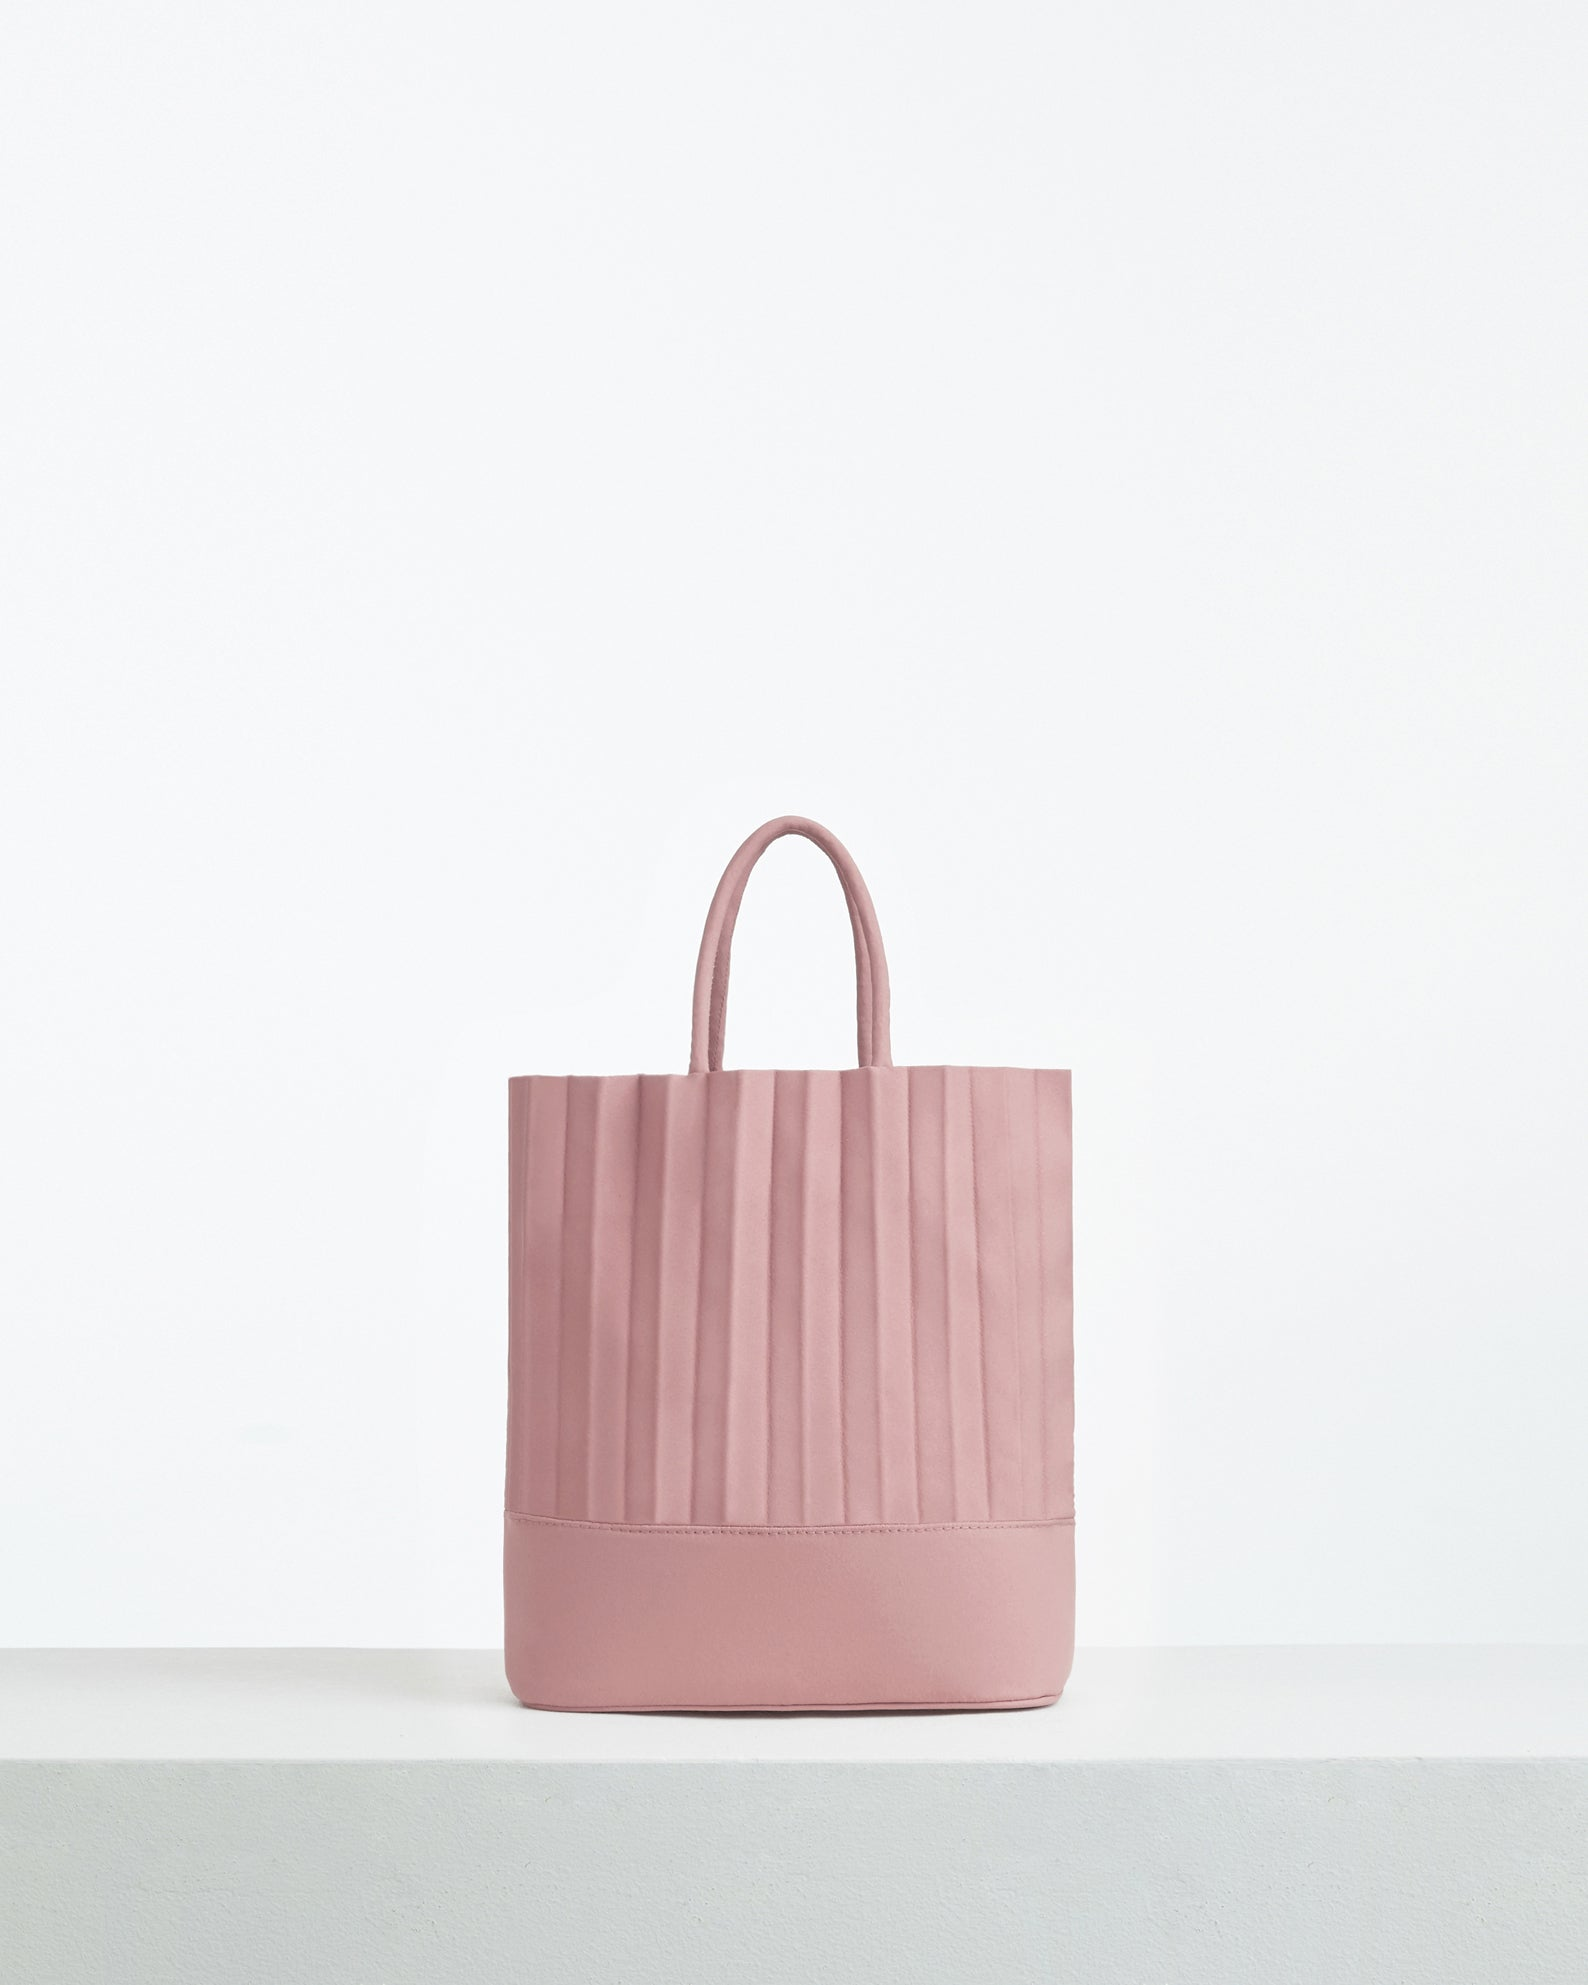 aPacklet (Pitcher) | Handbag in Rose Pink